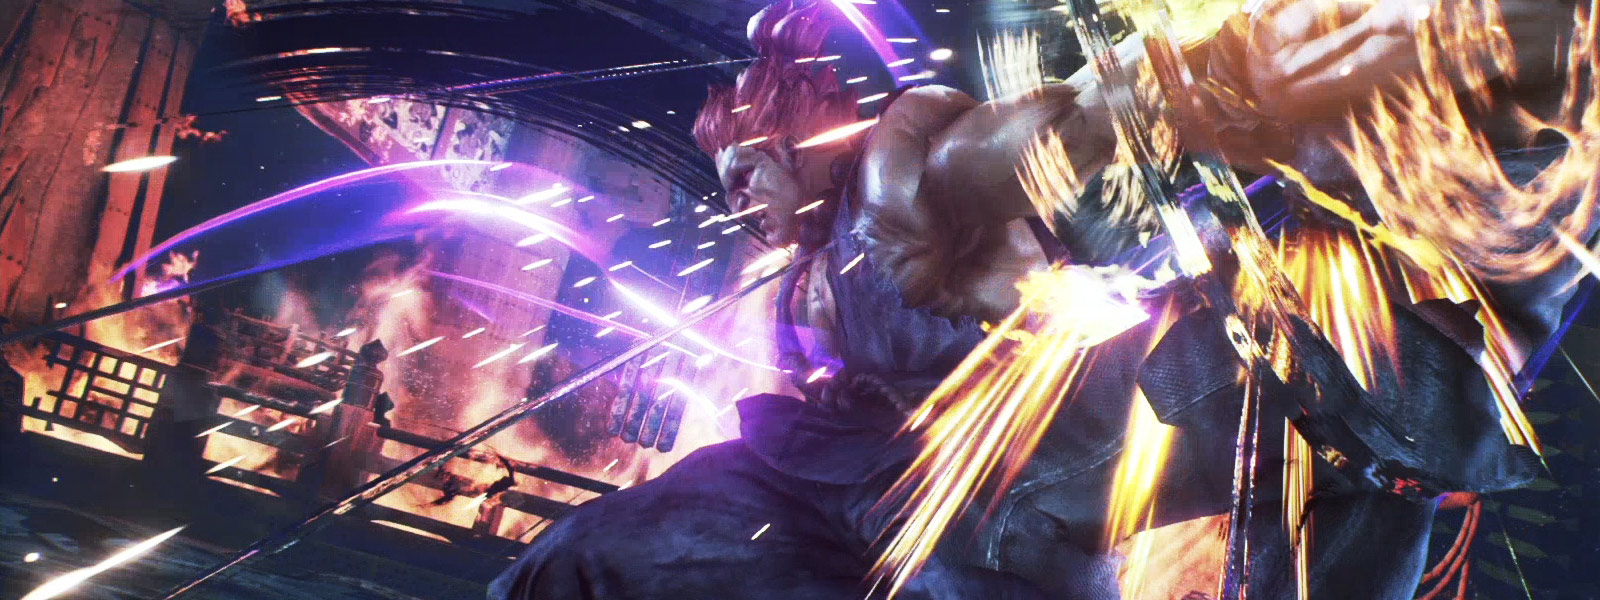 street fighter character, Akuma, charging up attack